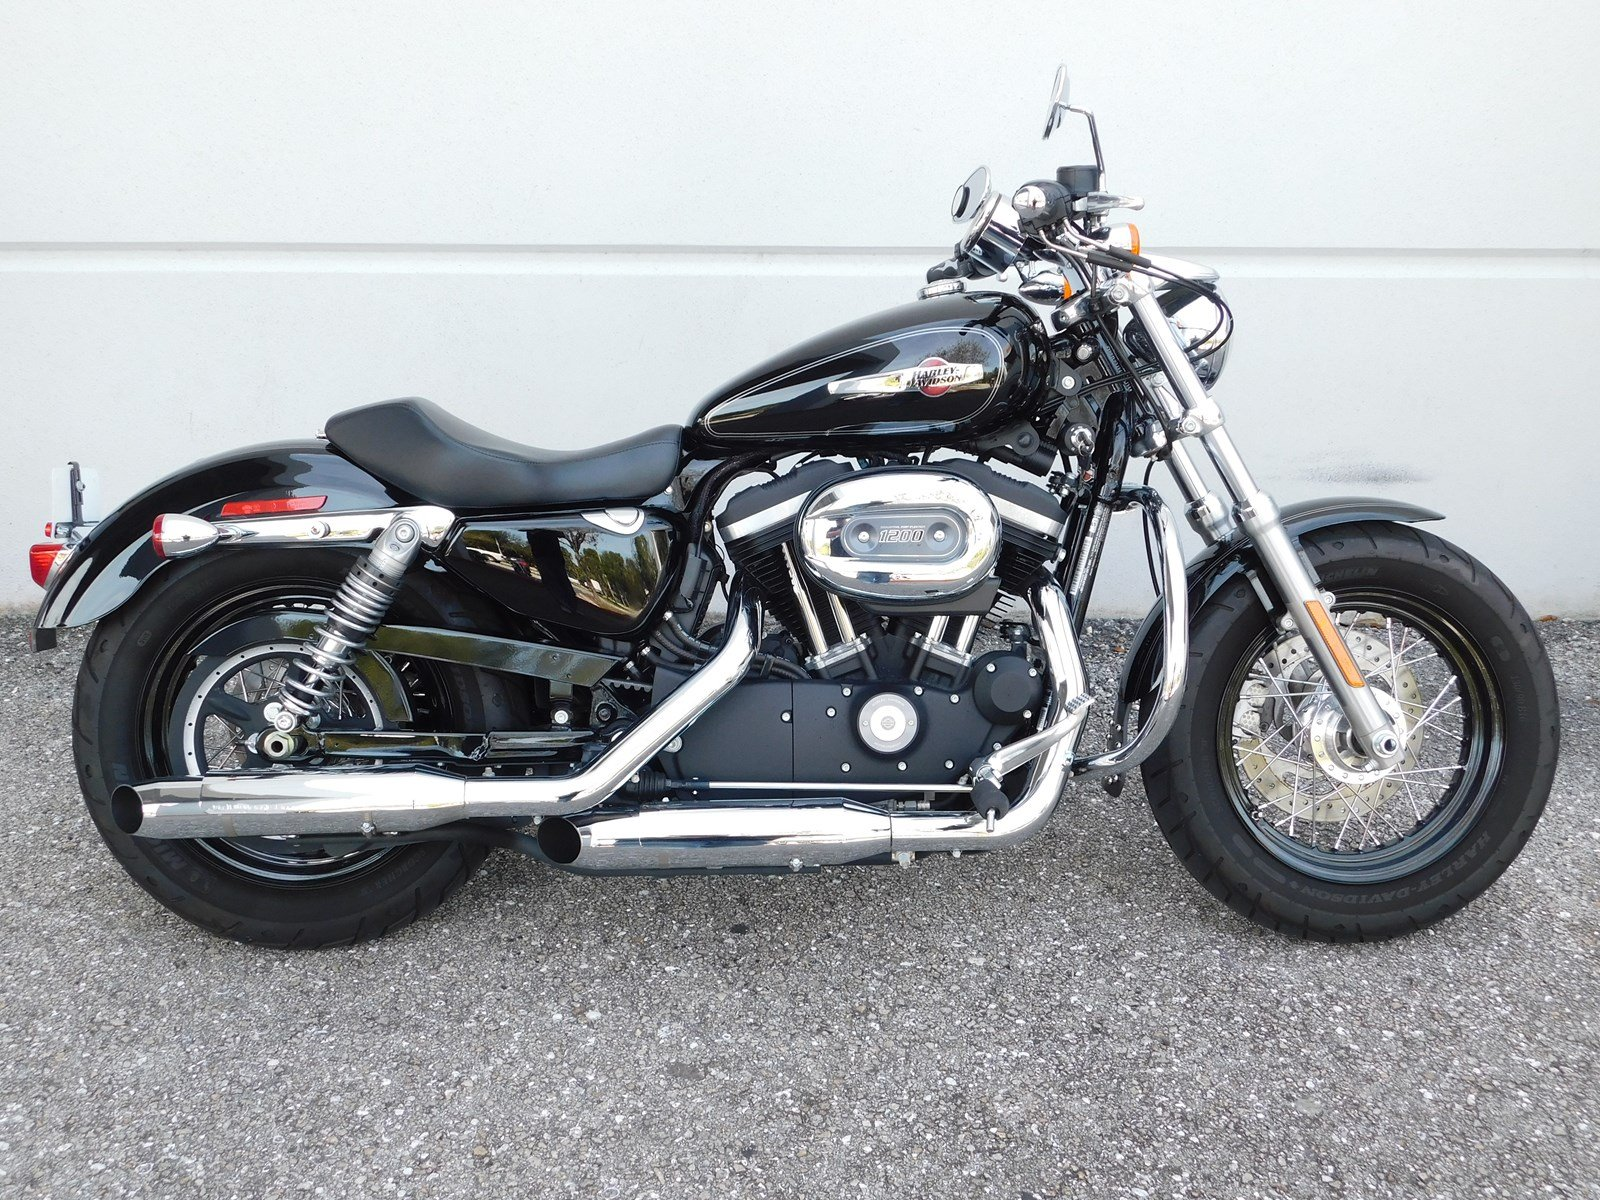 pre owned 2016 harley davidson sportster 1200 custom xl1200cp sportster in west palm beach. Black Bedroom Furniture Sets. Home Design Ideas